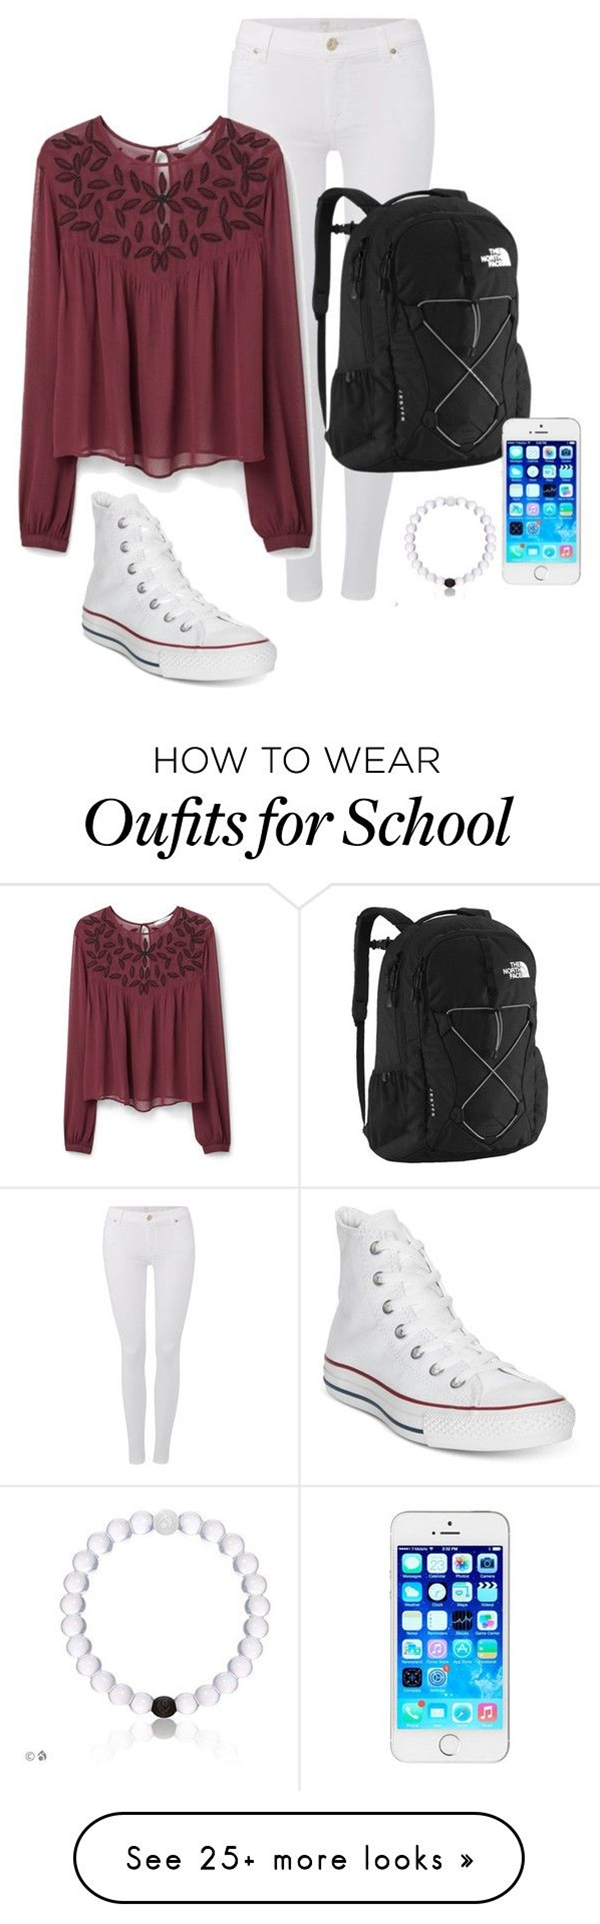 school outfit by valeriaveil on Polyvore featuring Converse, 7 For All Mankind, The North Face, MANGO, women's clothing, women, female, woman, misses and juniors